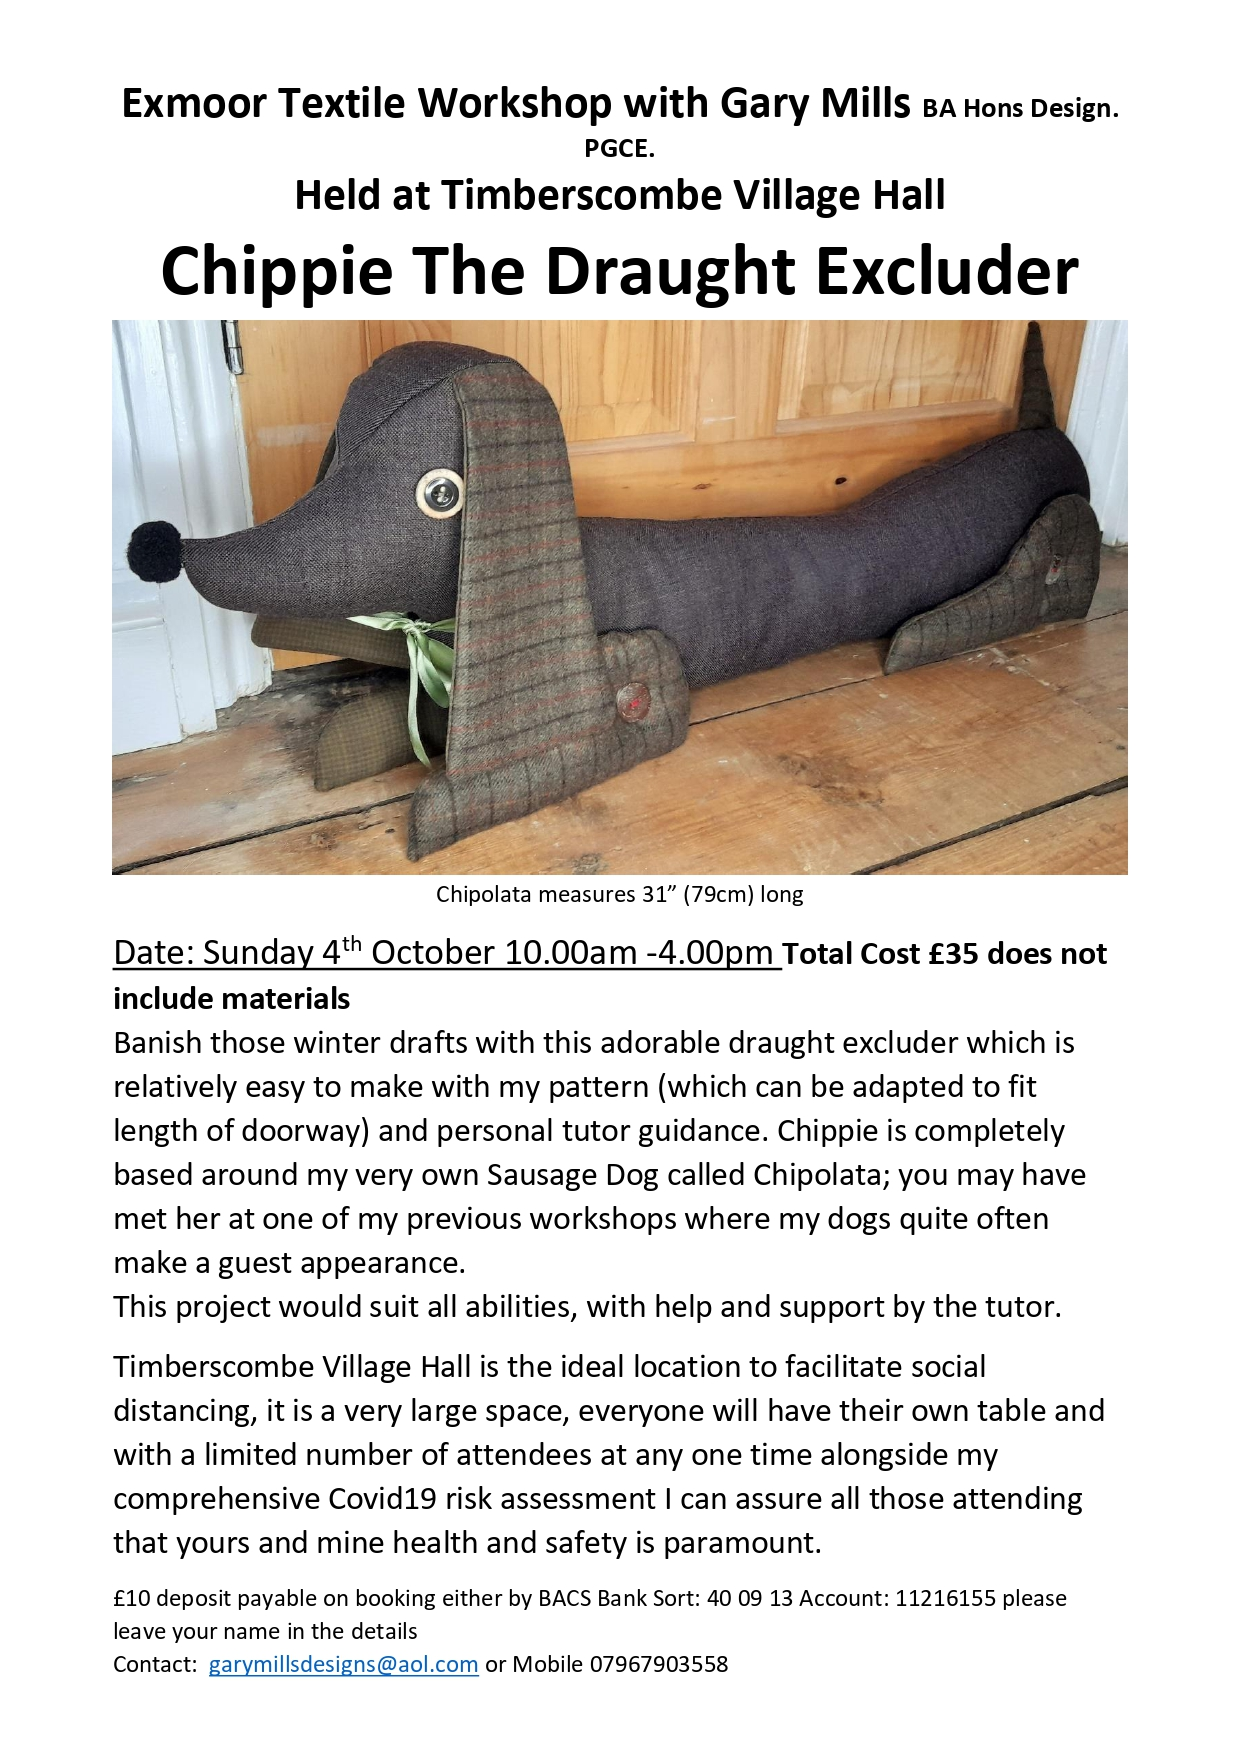 Chippie the Draught Excluder poster